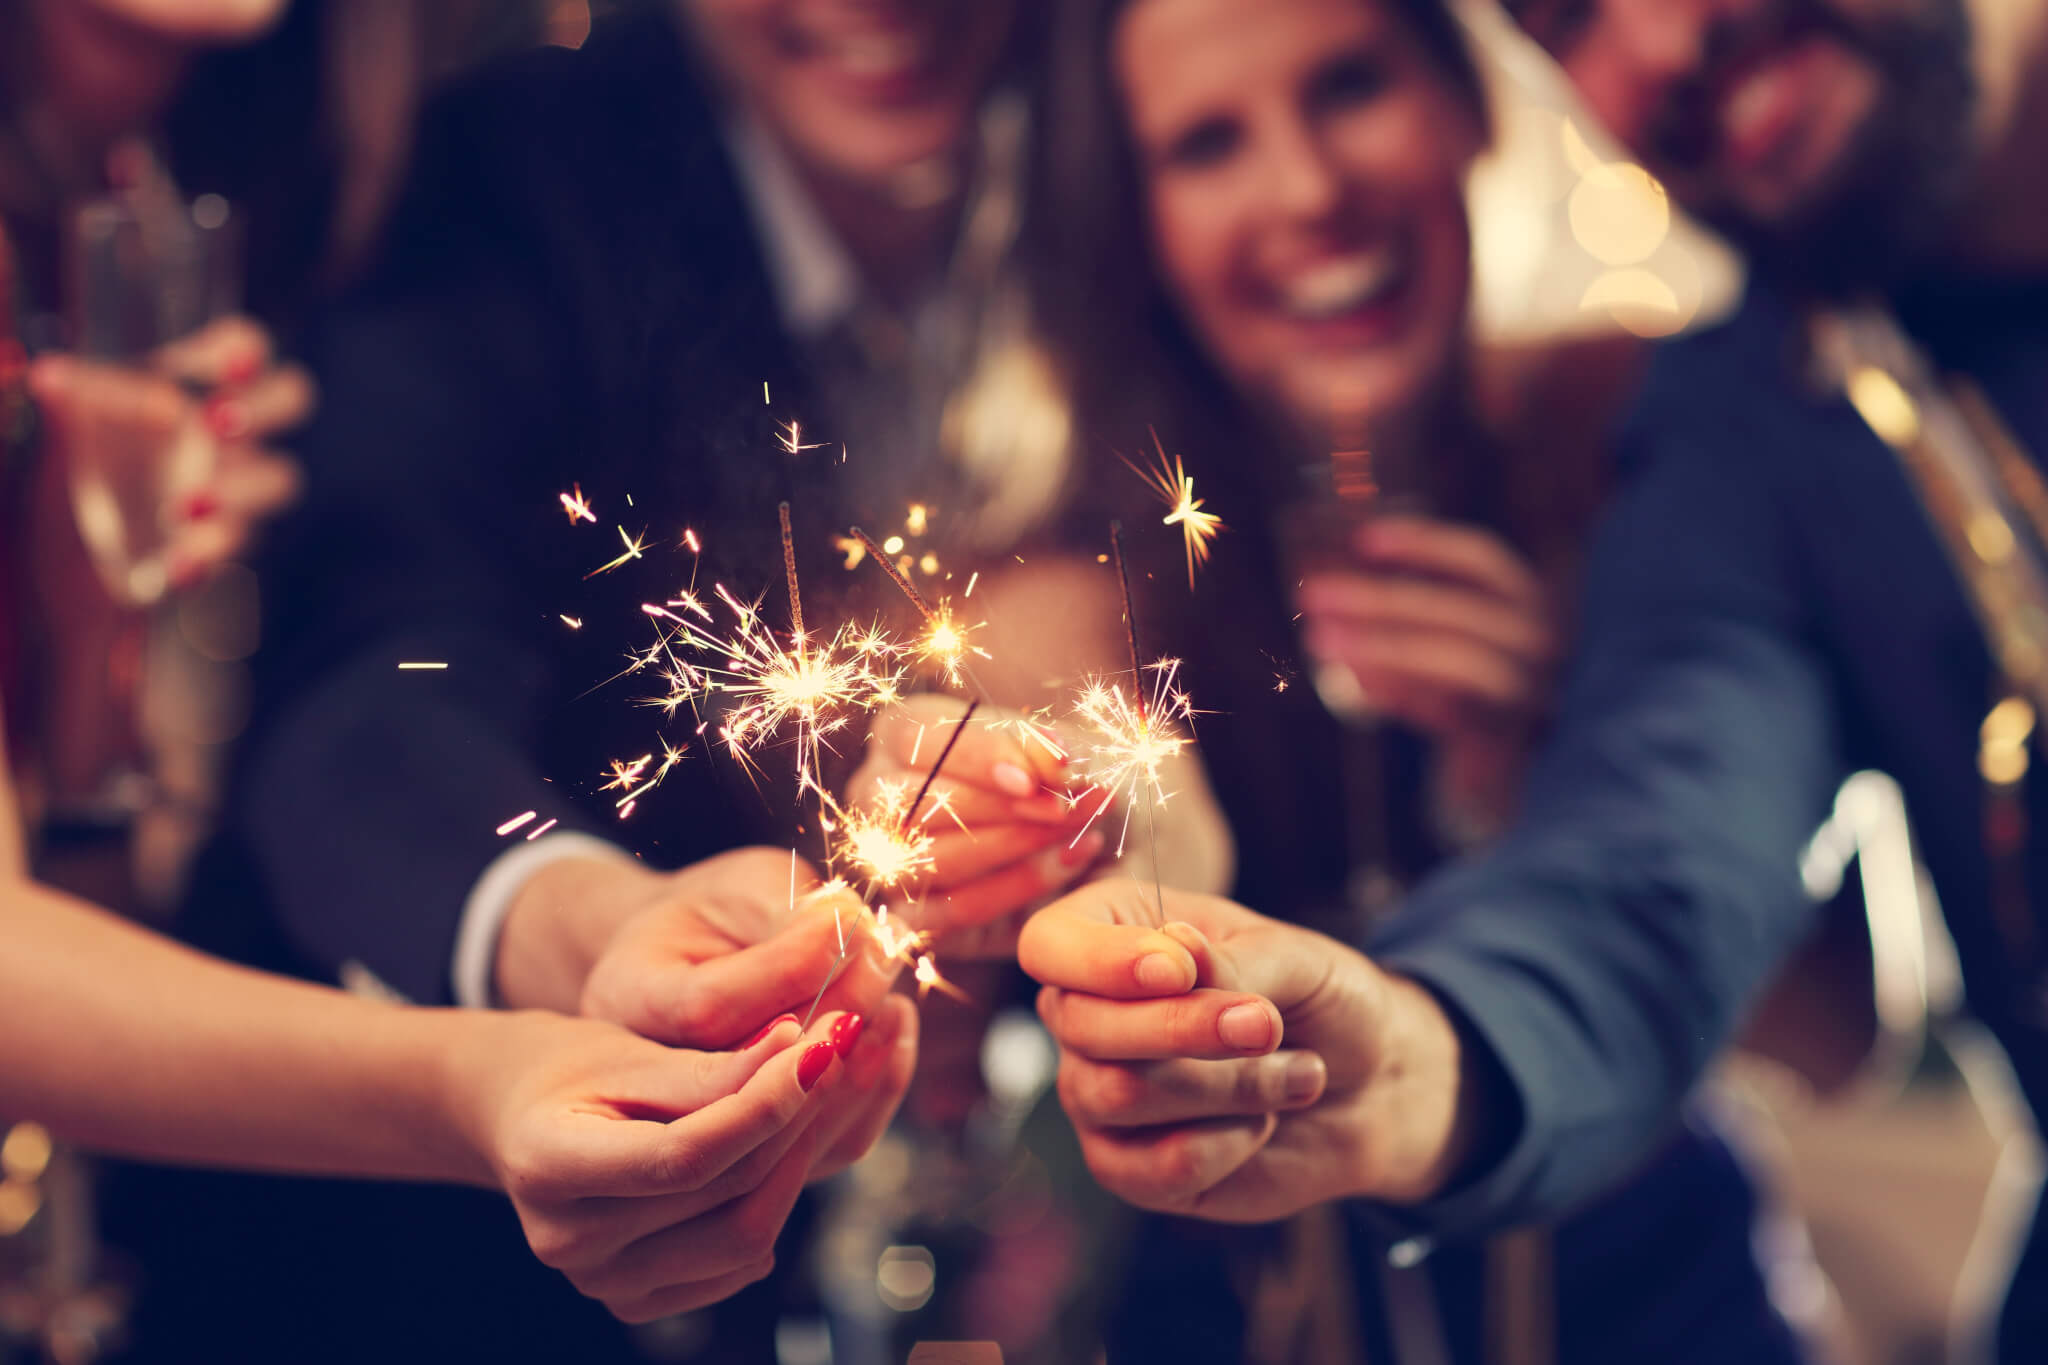 Group of people holding sparklers on New Years Eve